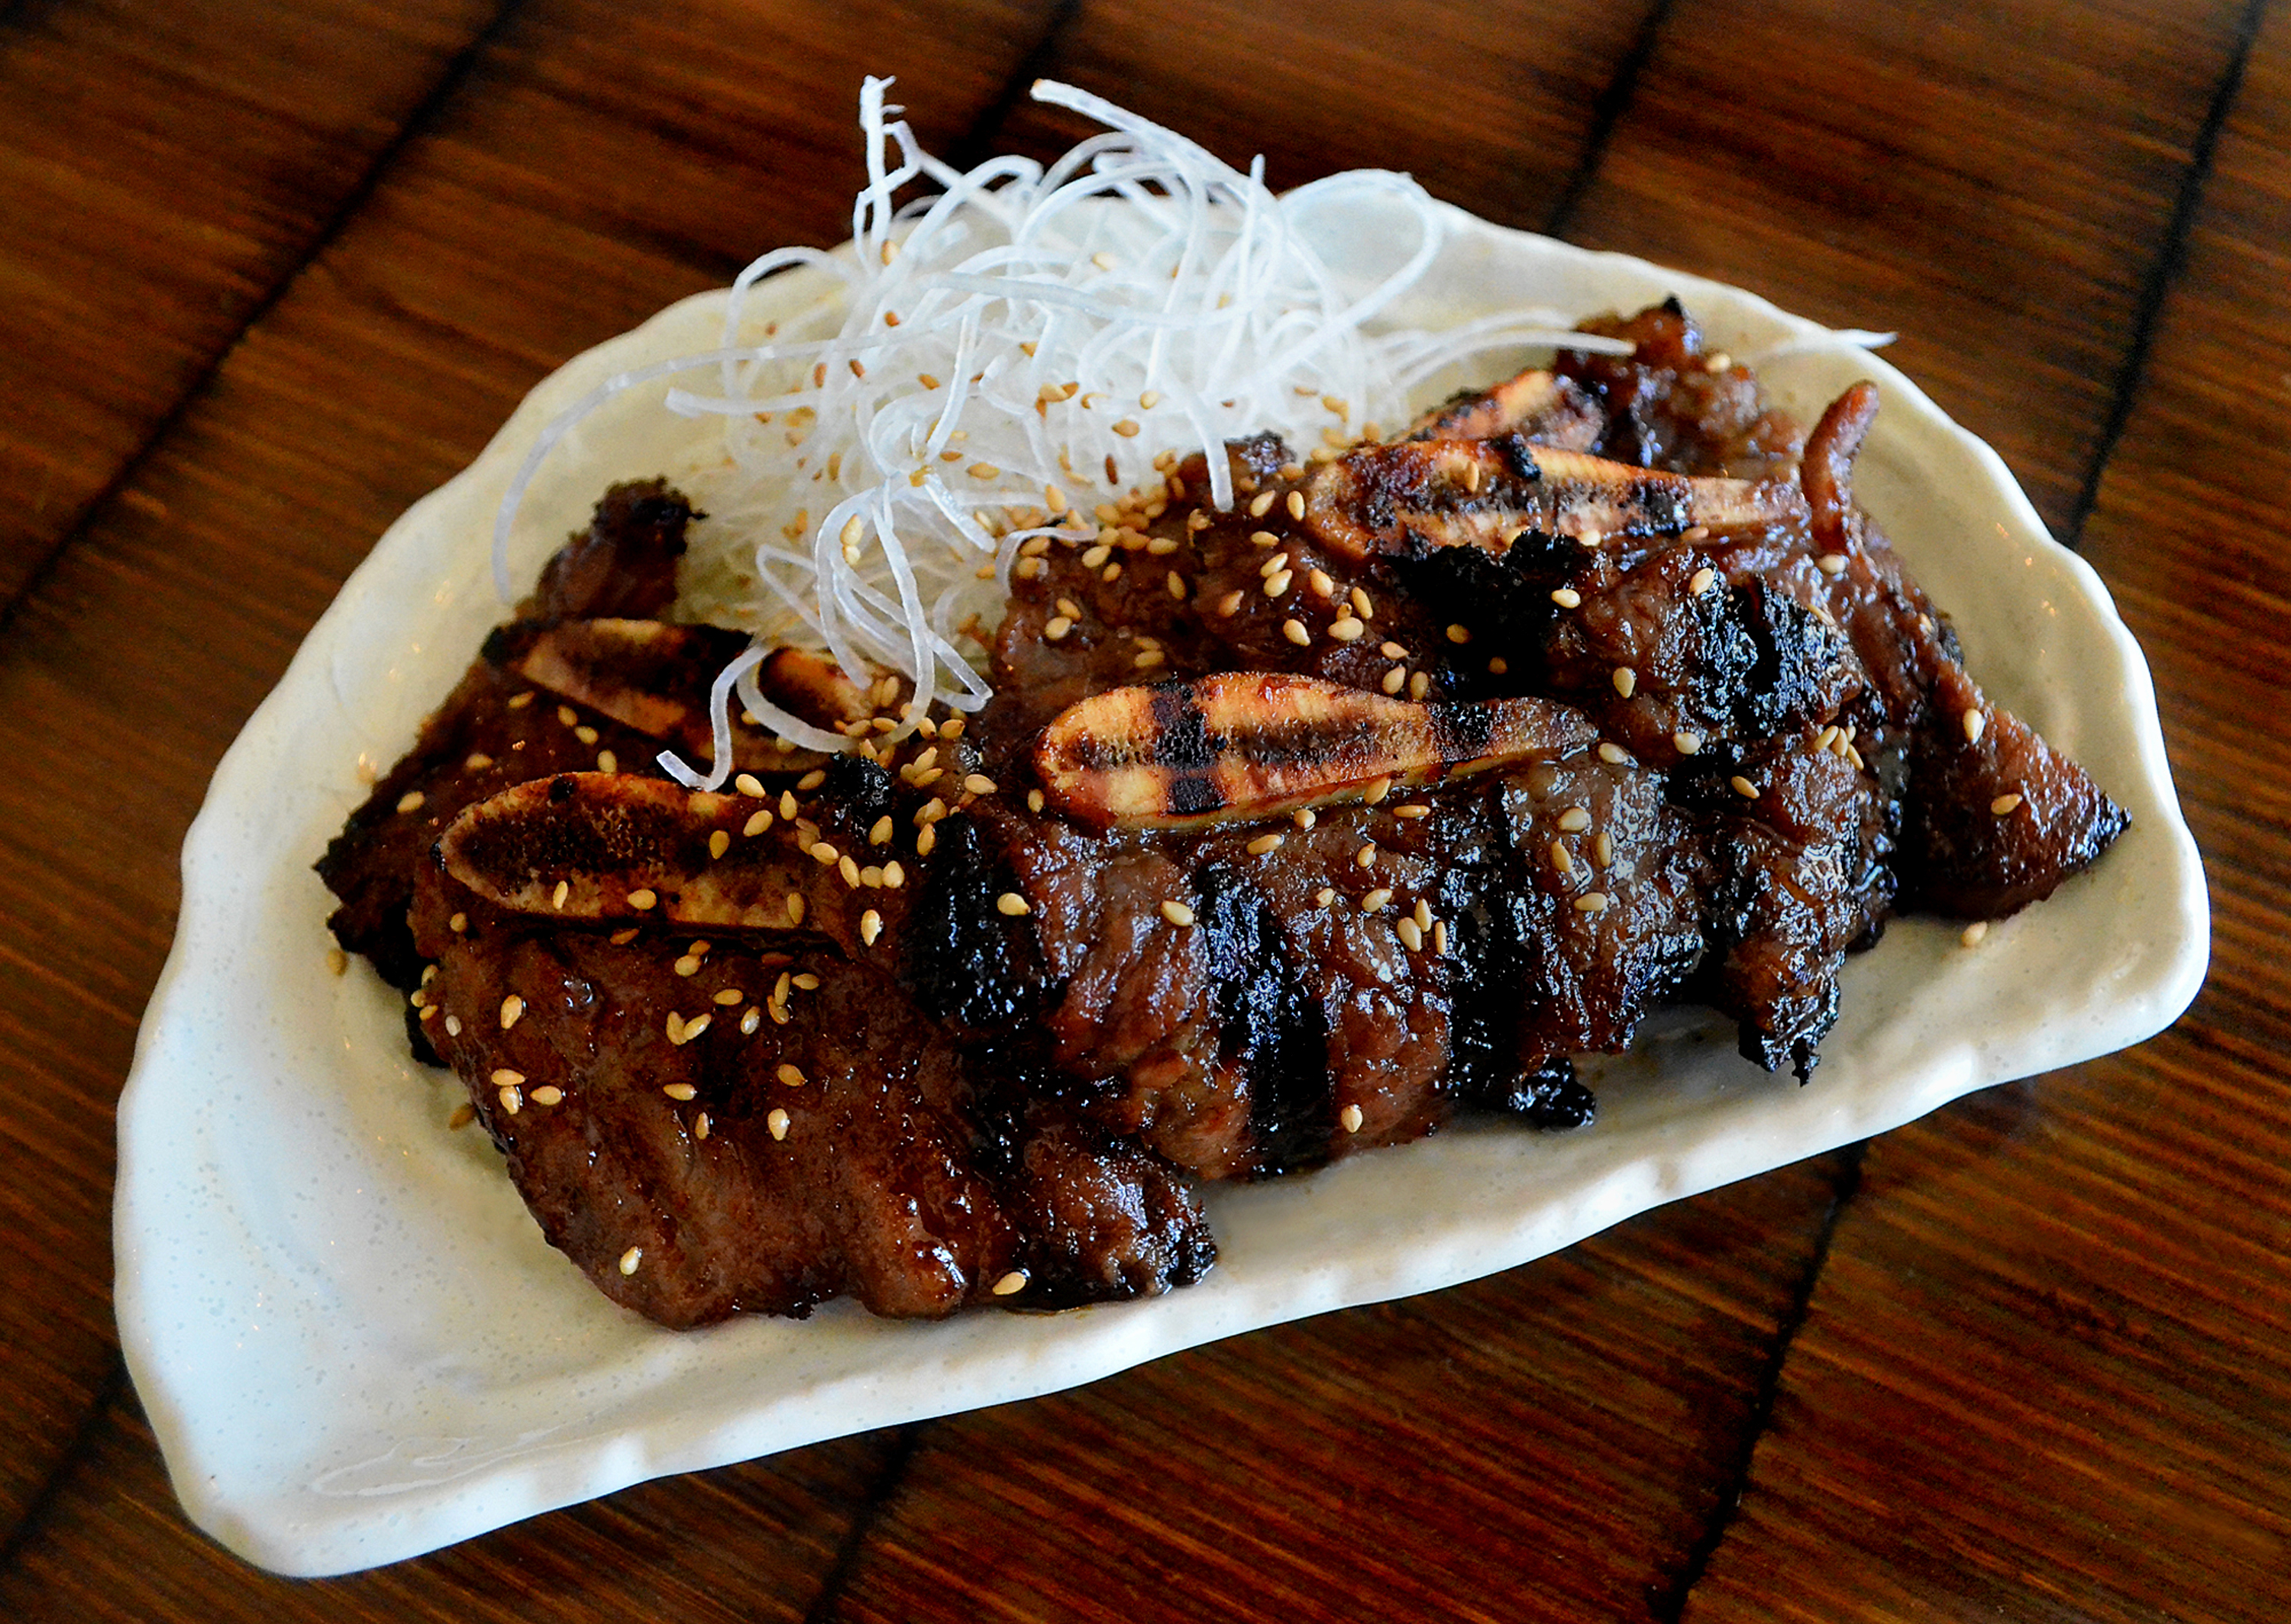 Grilled Korean-style short ribs on a plate.